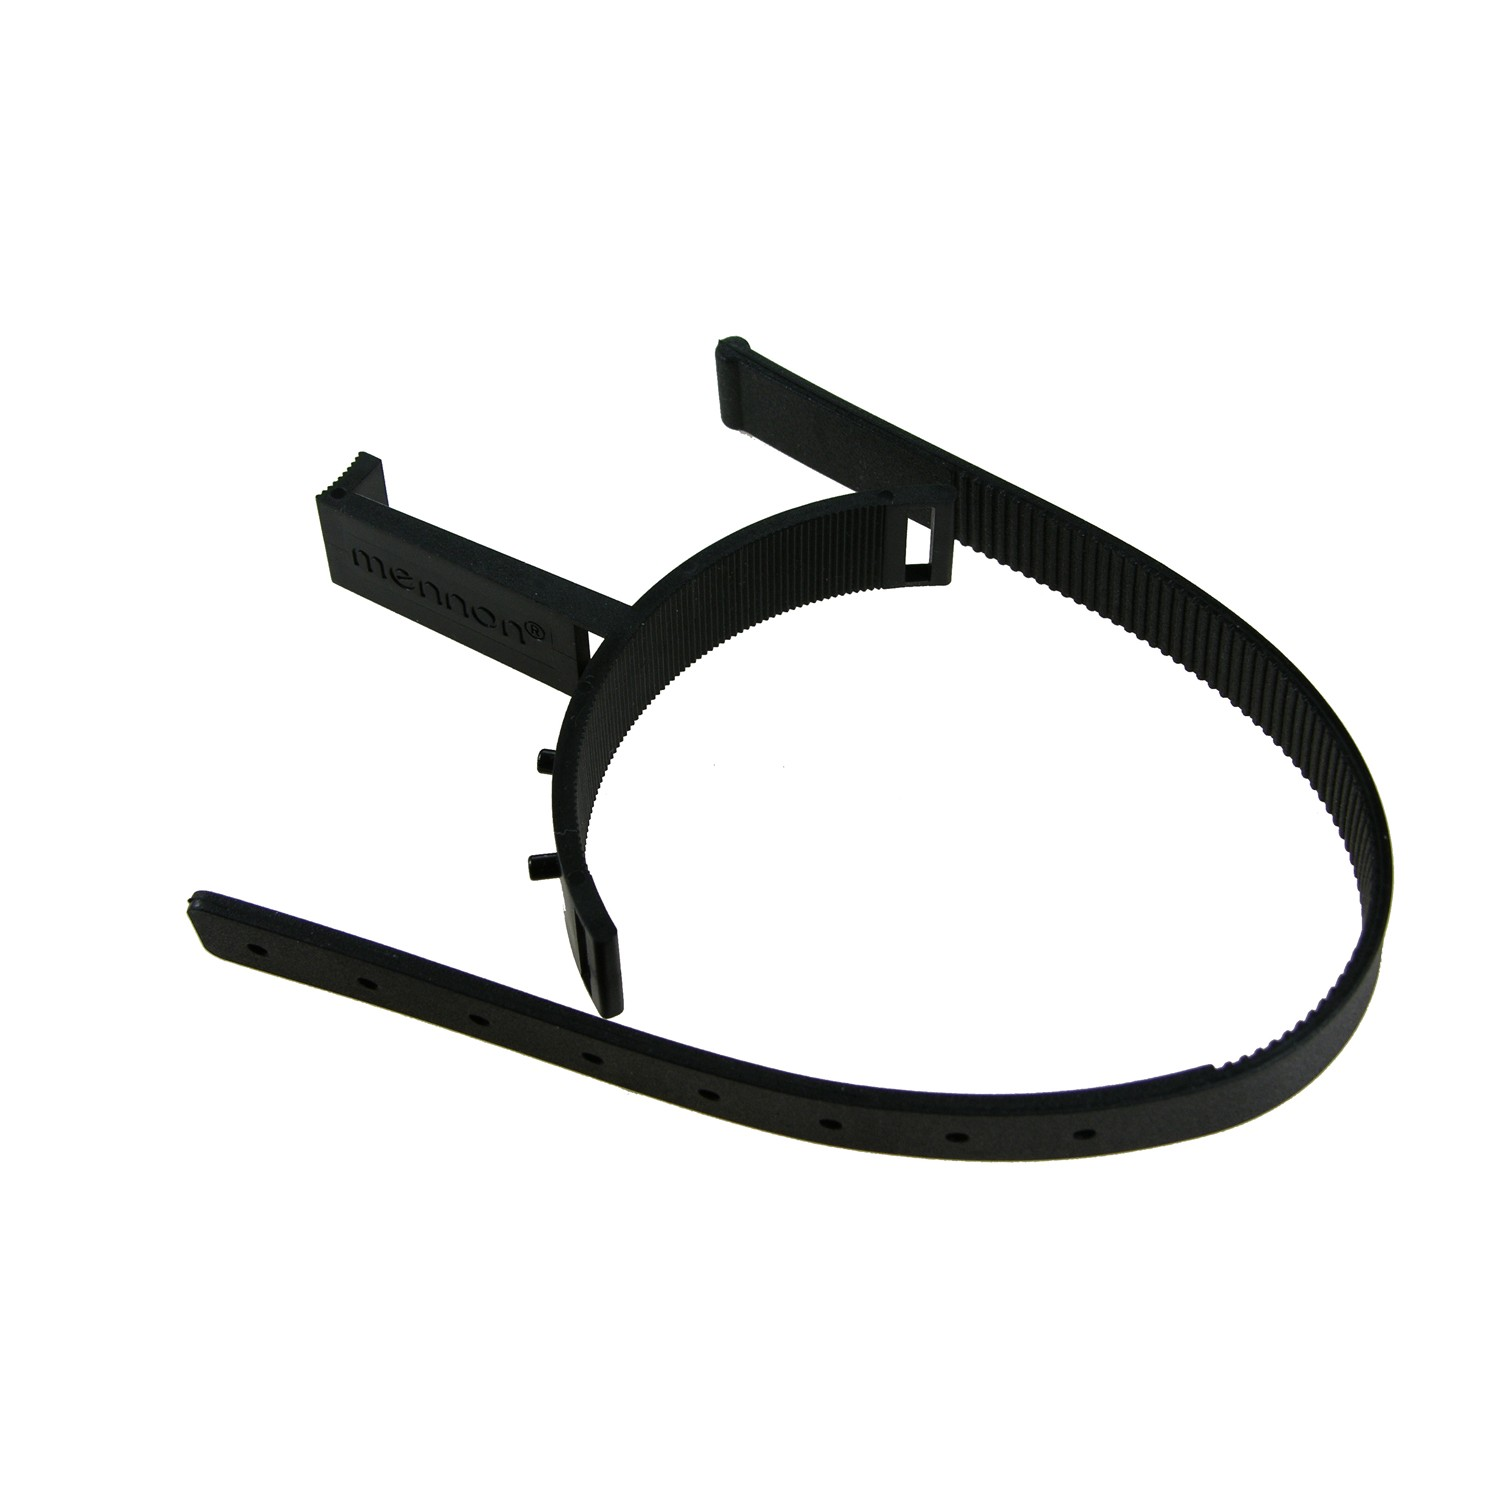 Mennon Video Zoom Handle for Digital Cameras - Small 90mm